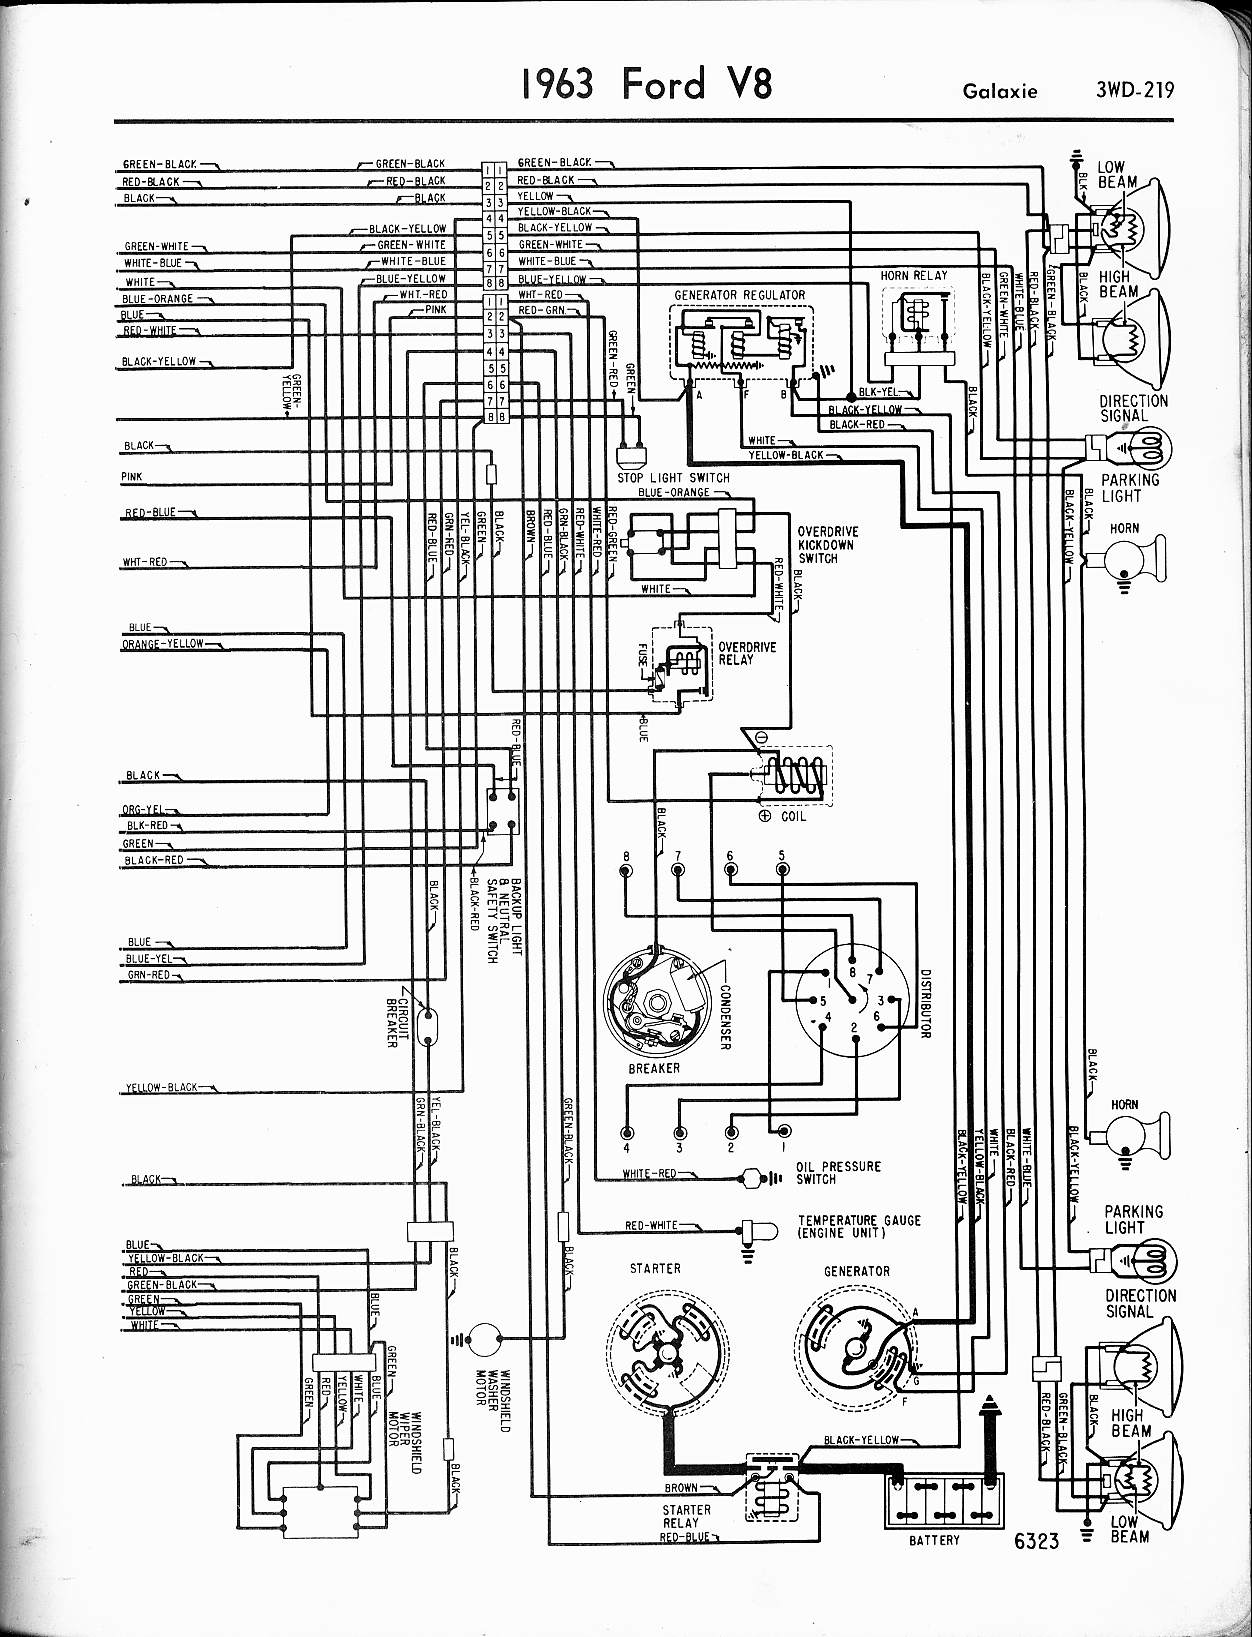 1963 galaxie wiring diagram 18 7 beckman vitamin d de \u202257 65 ford wiring diagrams rh oldcarmanualproject com 1963 ford galaxie generator wiring diagram 1963 galaxie